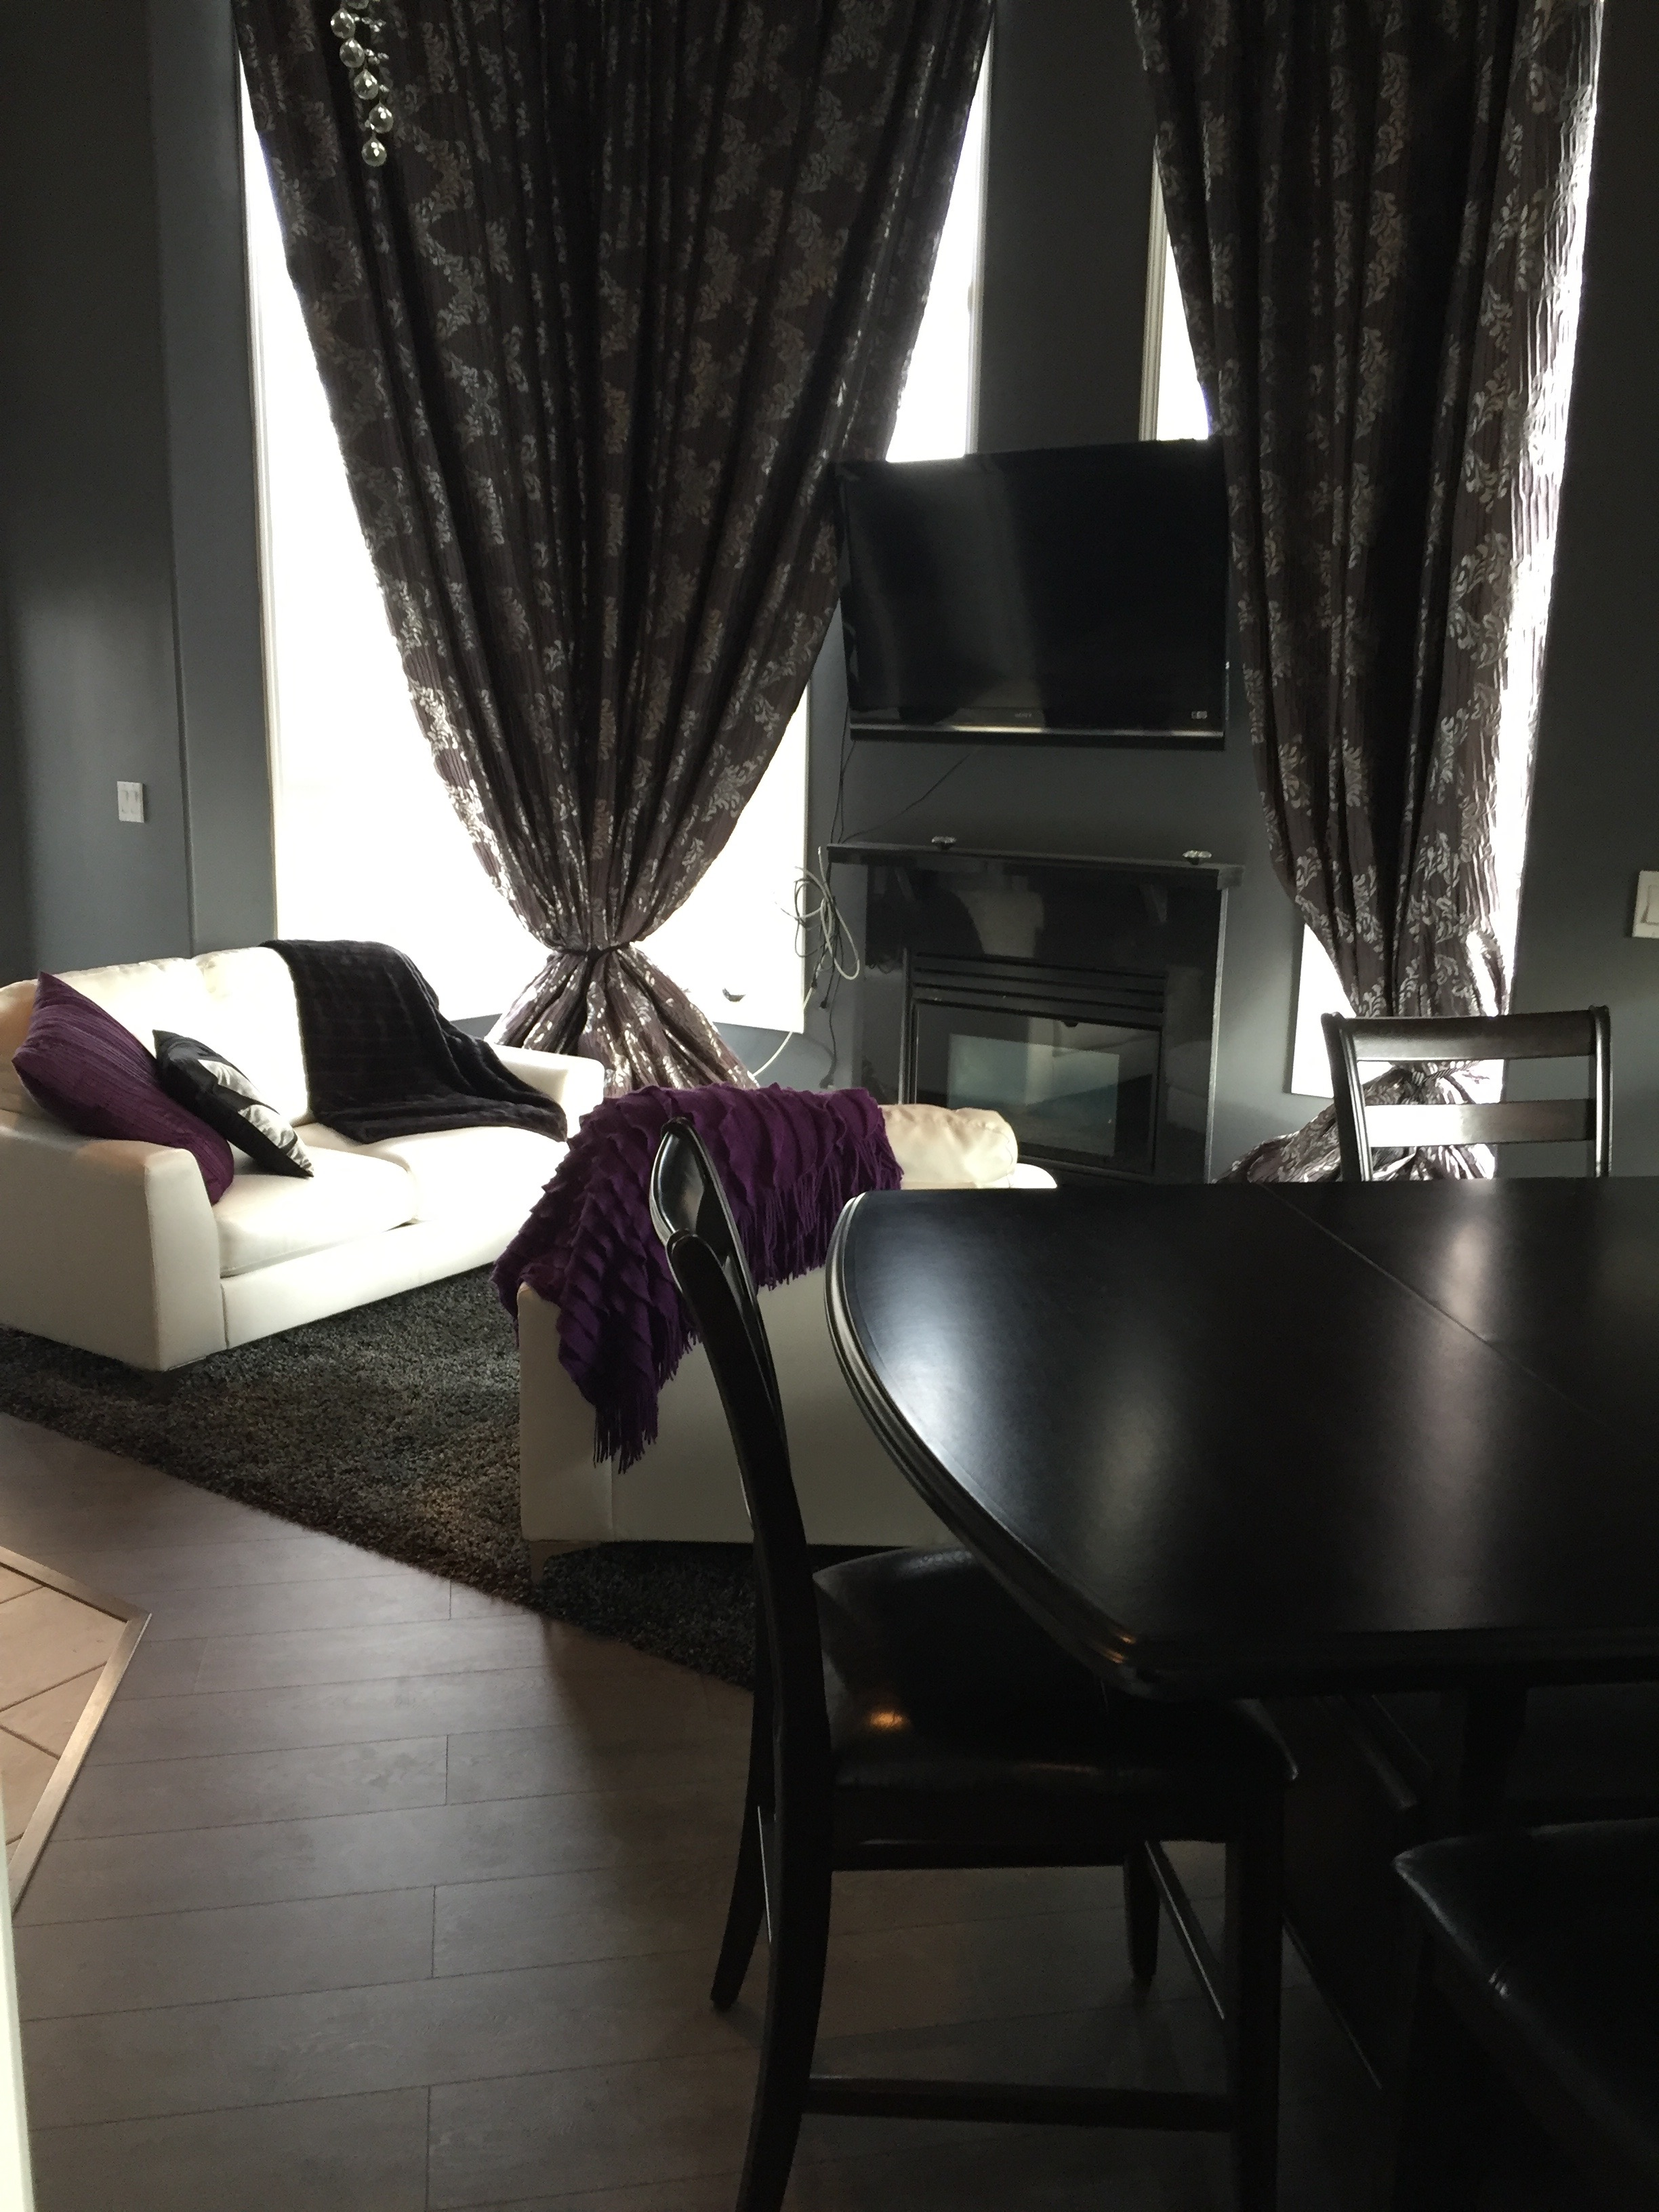 2 bedroom + loft, 2 bath Condo Penthouse. Oliver. $2000/month Furnished